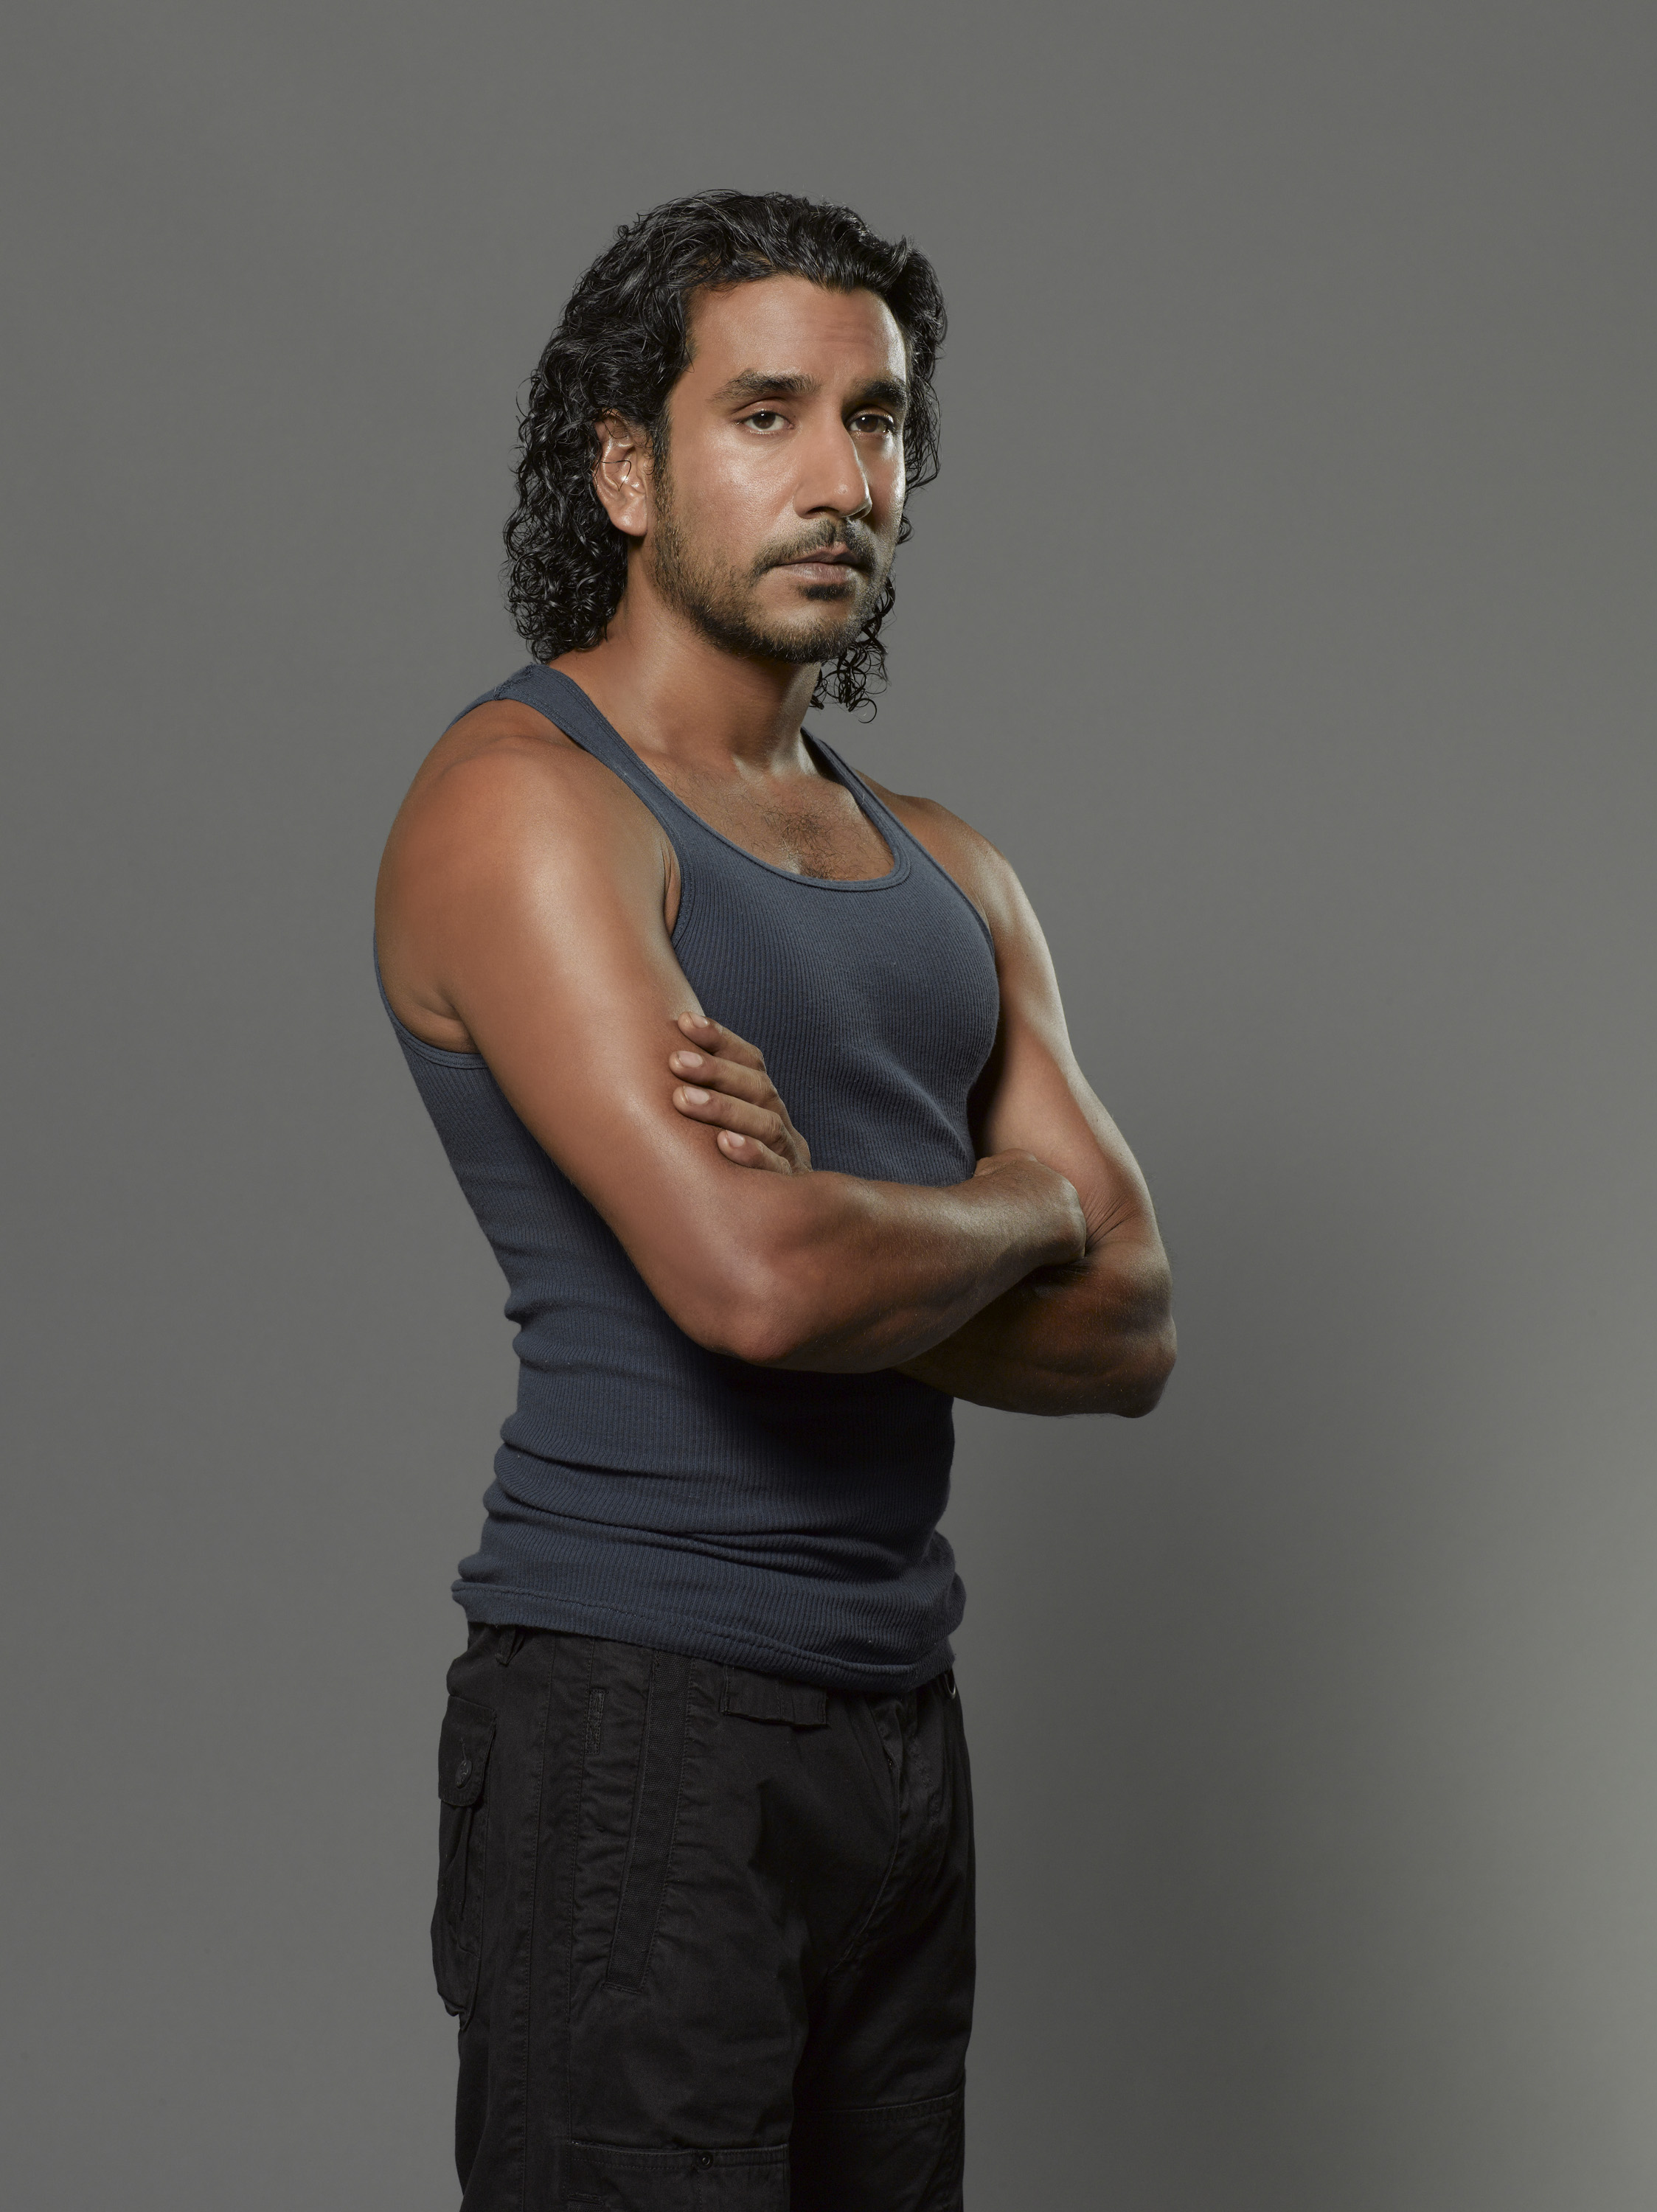 naveen andrews 2016naveen andrews 2017, naveen andrews wife, naveen andrews playing guitar, naveen andrews amanda, naveen andrews news, naveen andrews barbara hershey, naveen andrews diana, naveen andrews and son, naveen andrews instagram, naveen andrews 2016, naveen andrews interview, naveen andrews height, naveen andrews sense8, naveen andrews facebook, naveen andrews personal life